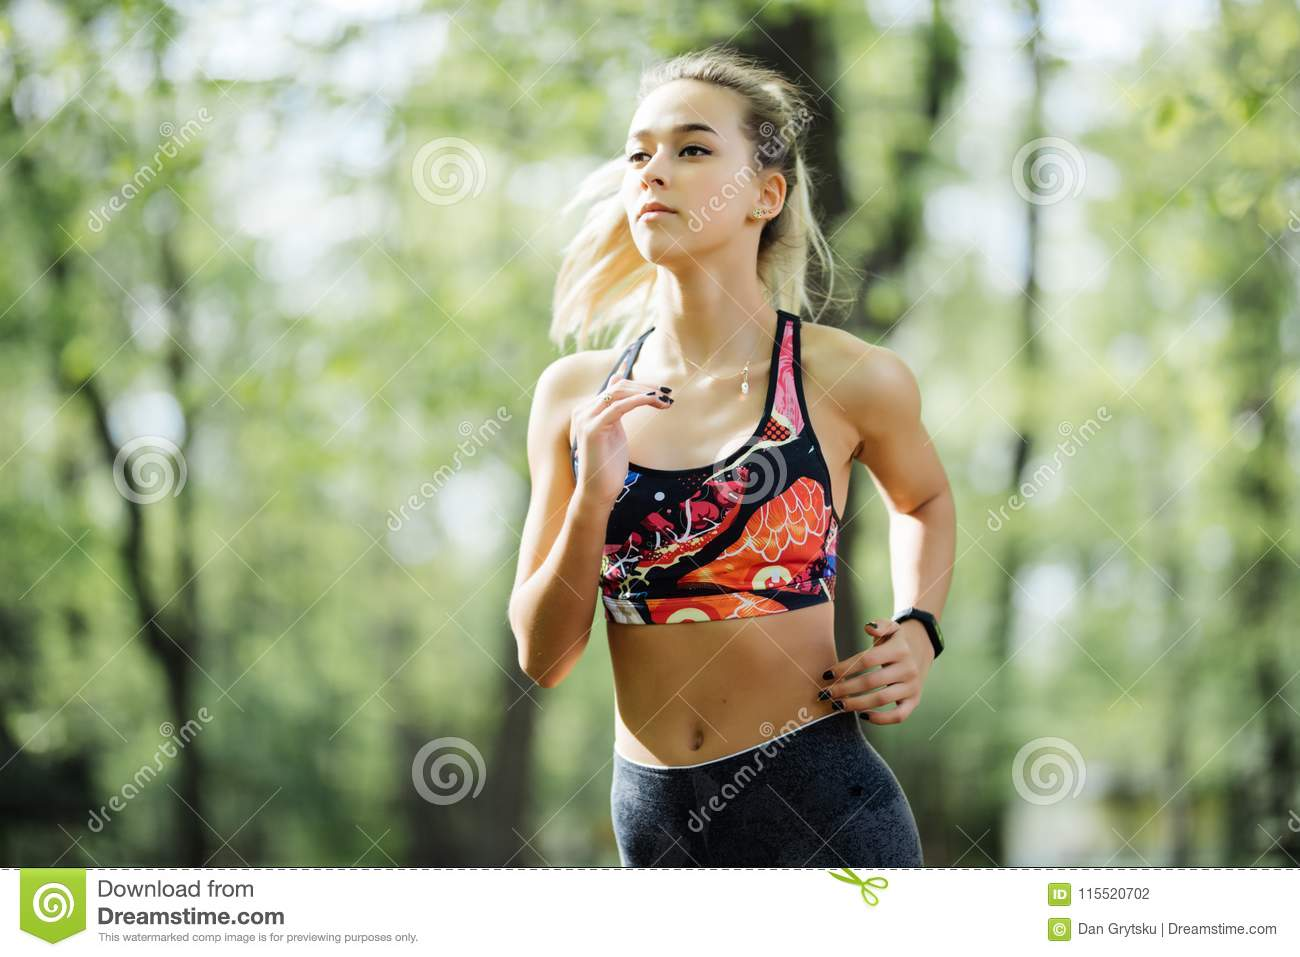 50fbbf29d713 Running woman in park in summer training. Young sport fitness model in  sporty running clothes